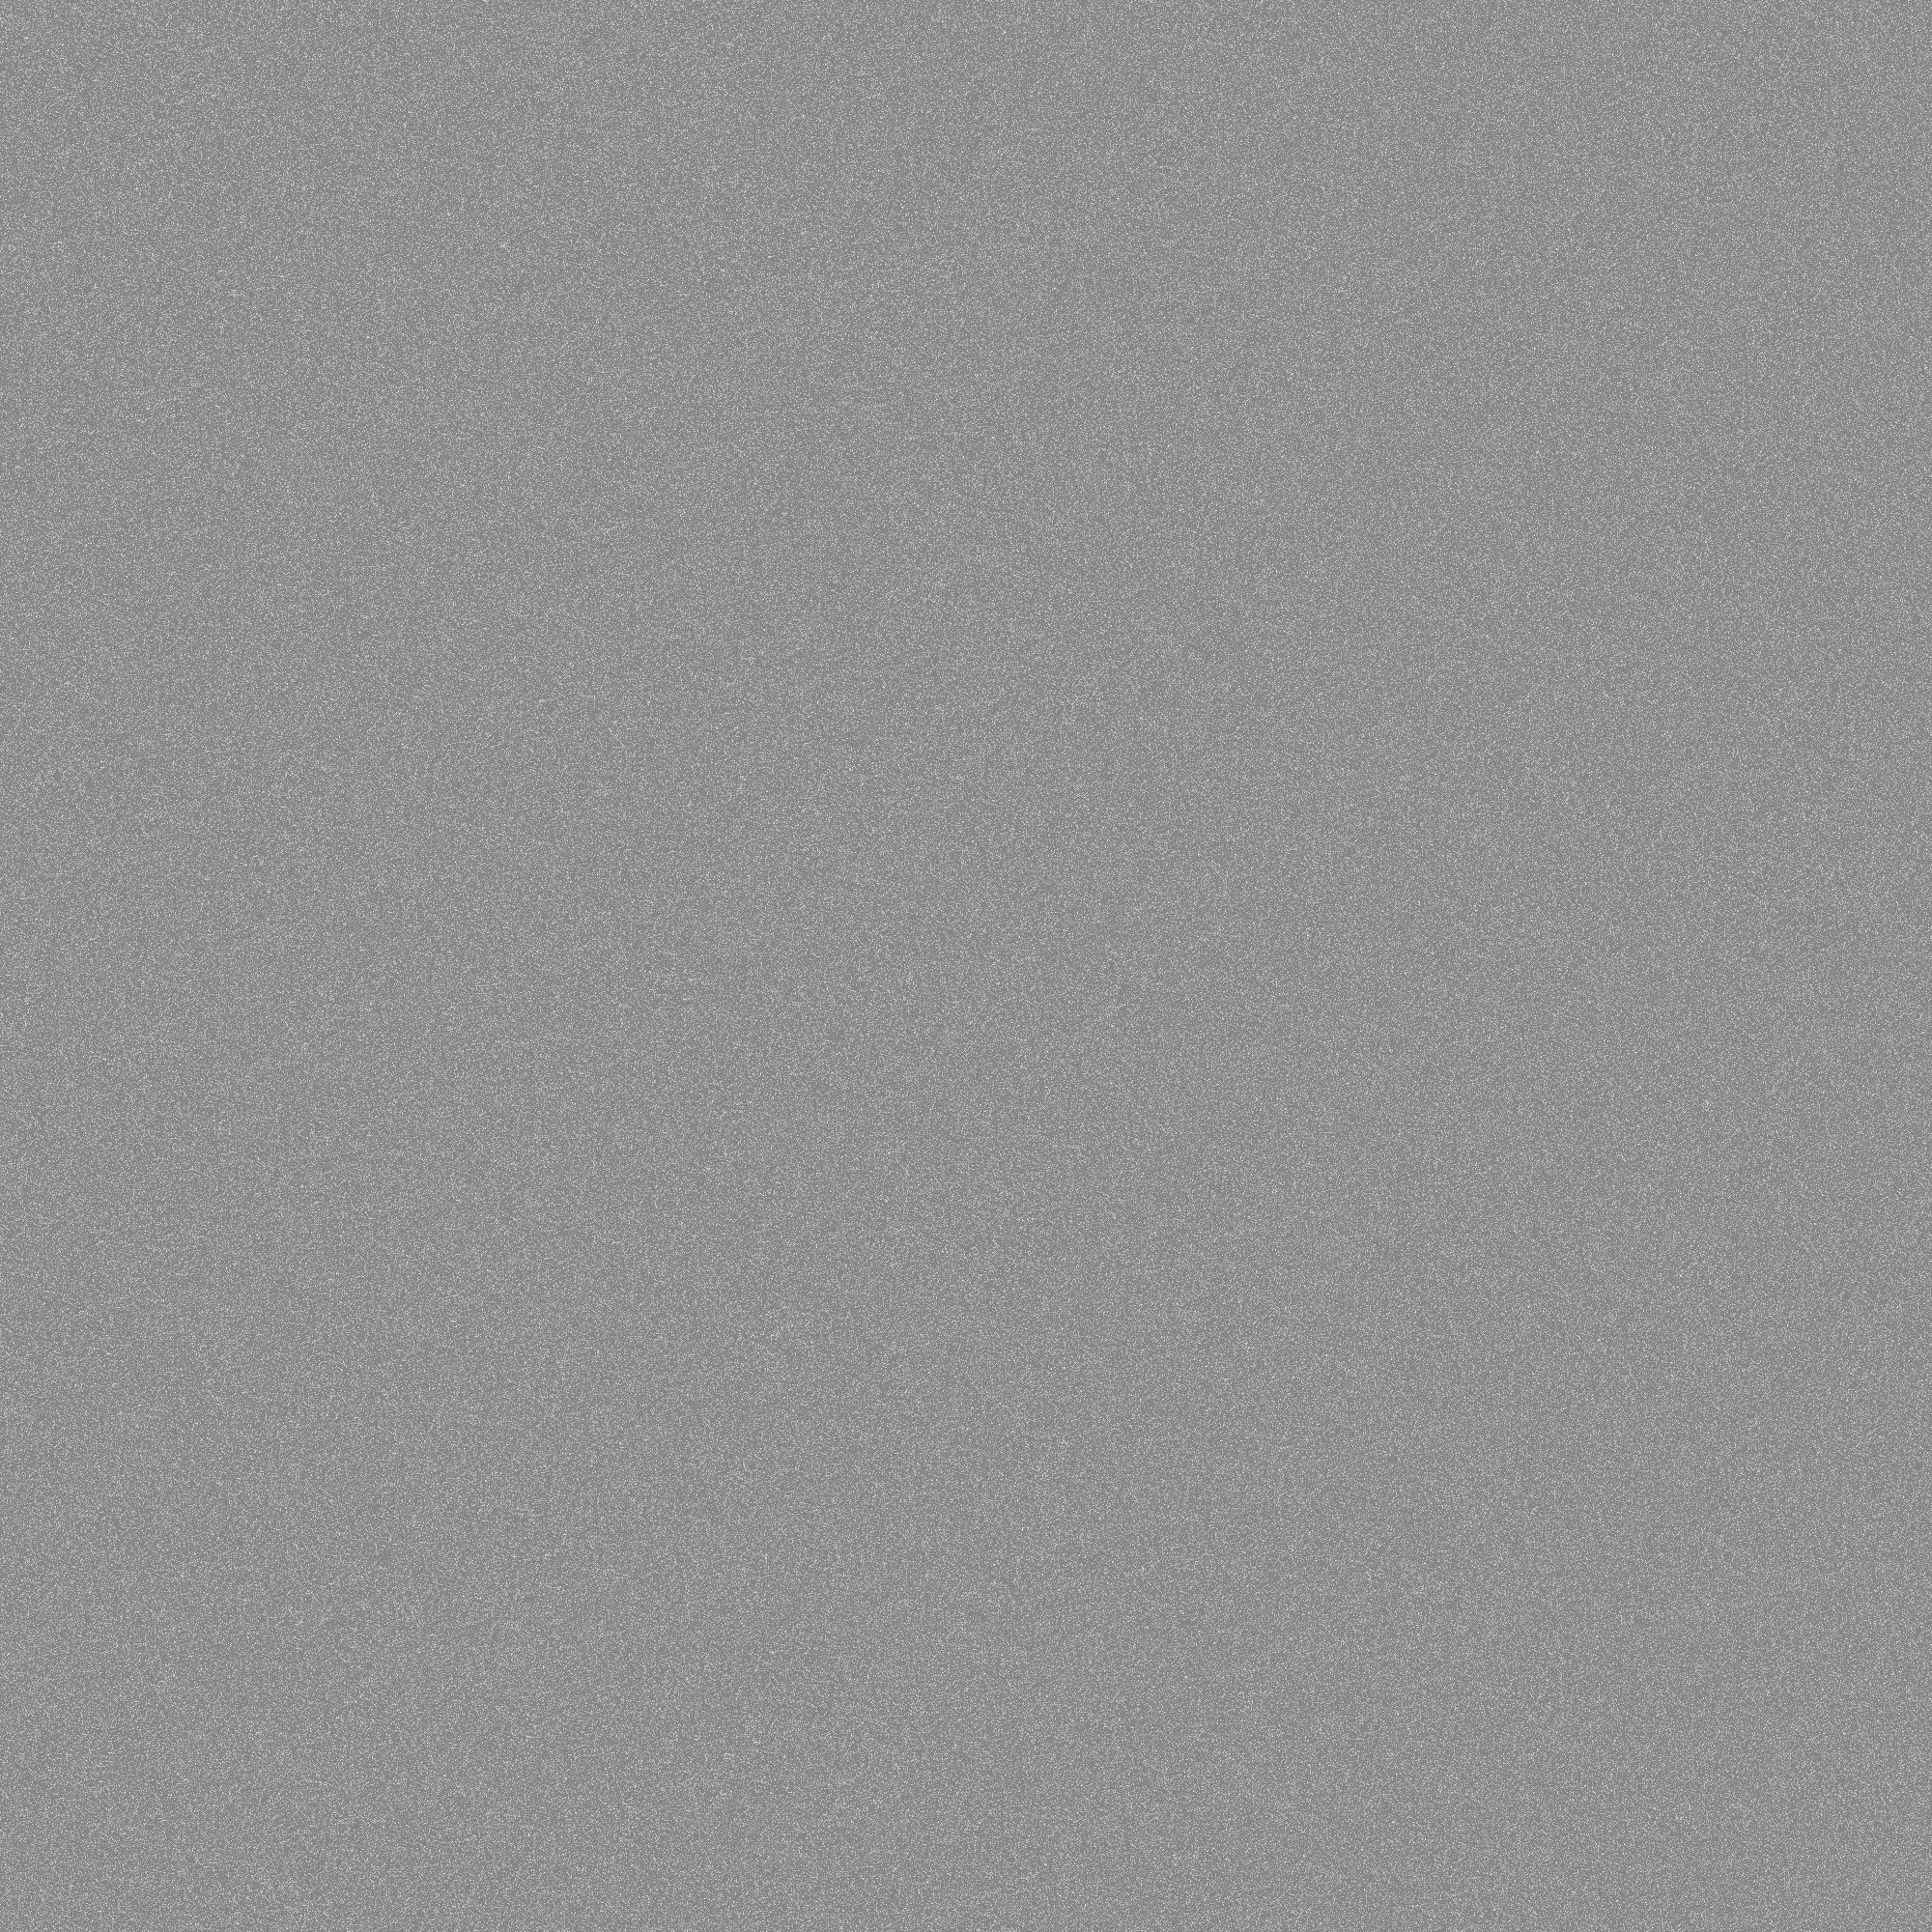 light gray background